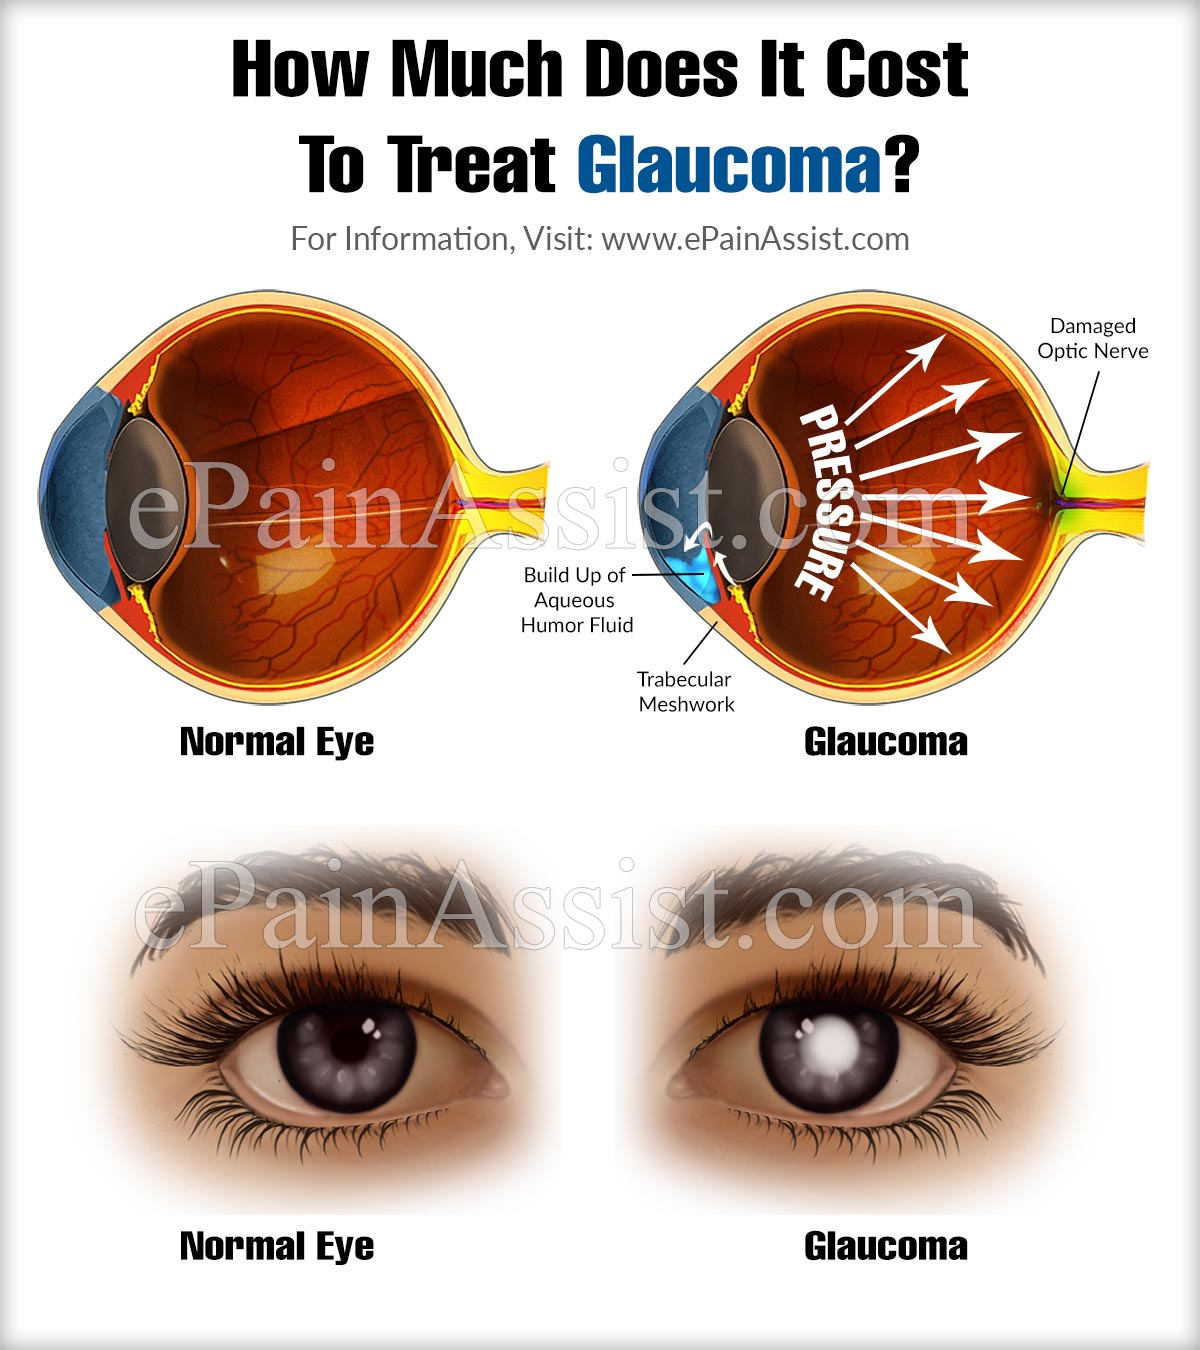 how much does it cost to treat glaucoma